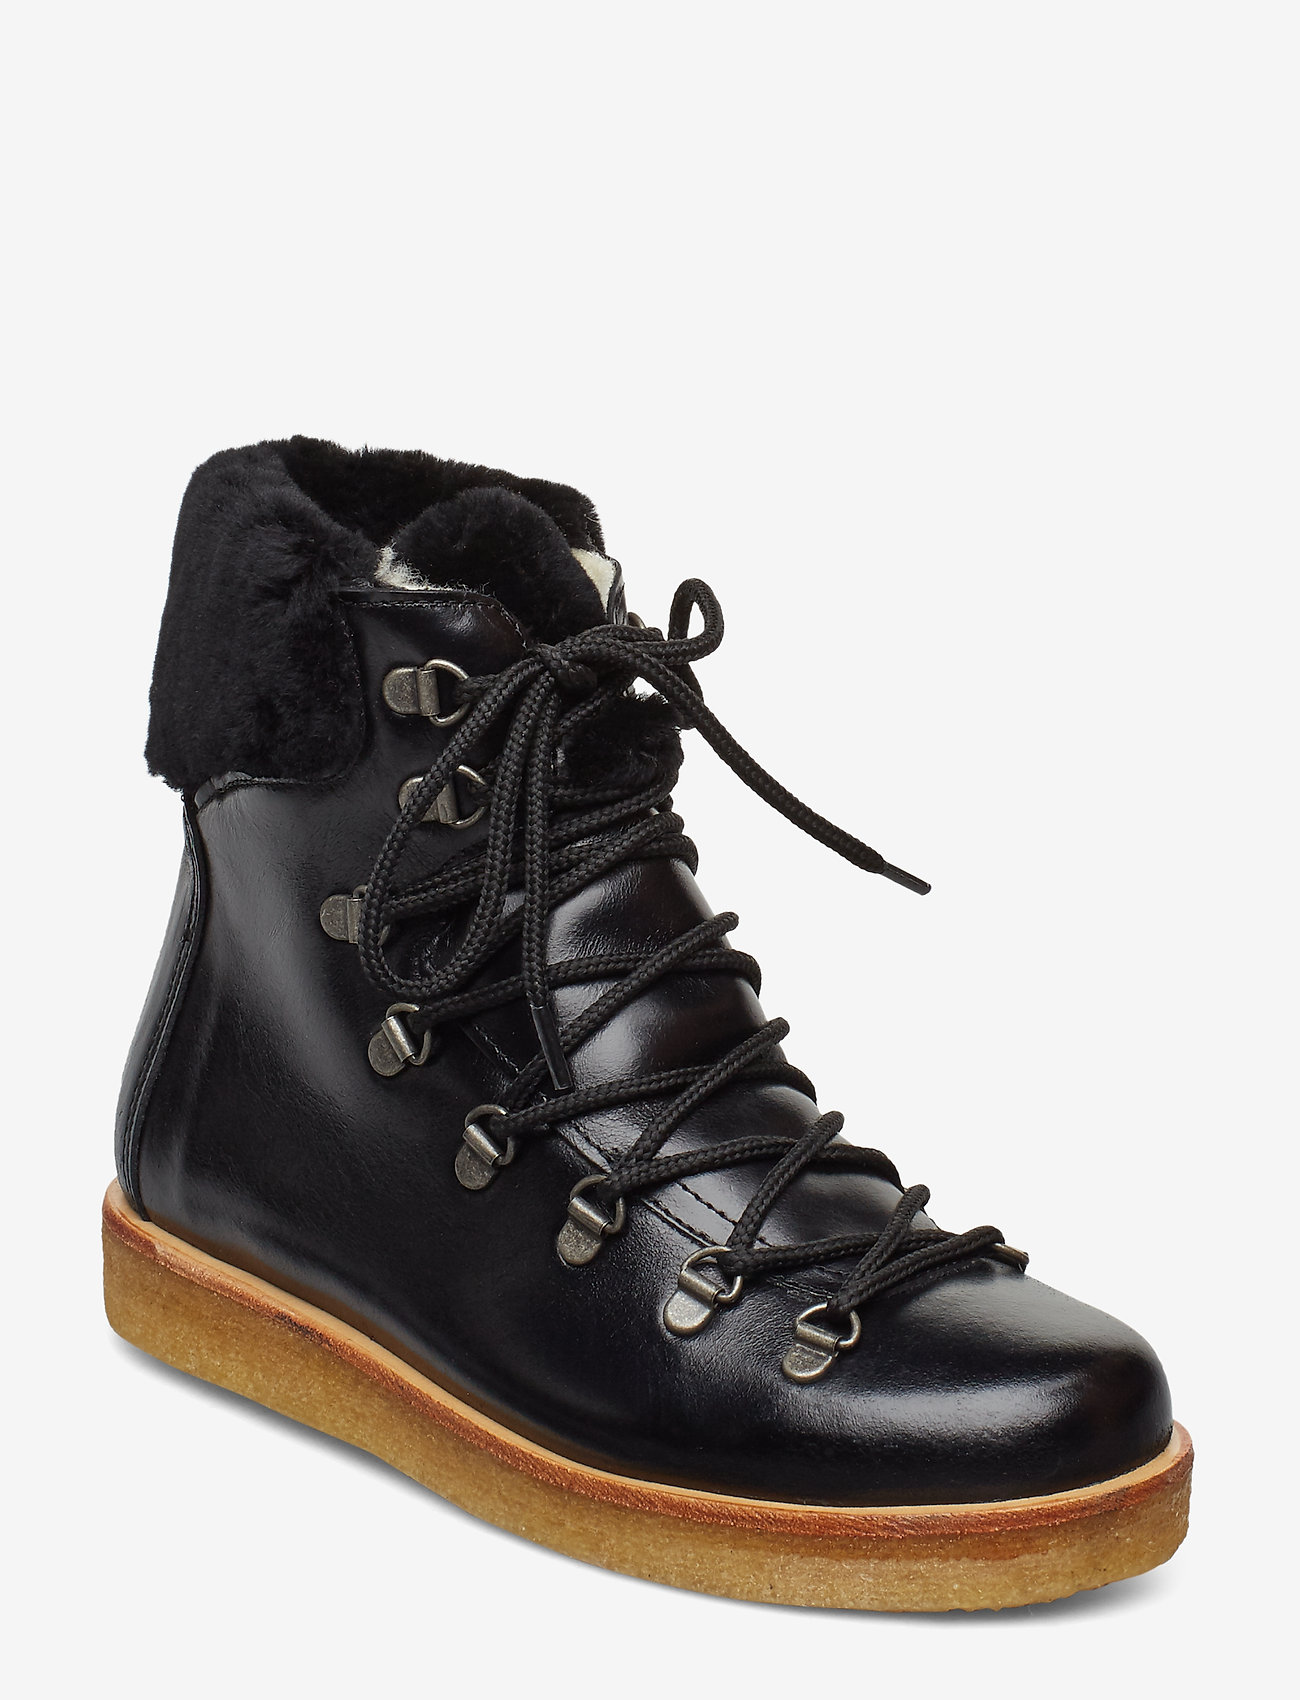 ANGULUS - Boots - flat - with laces - talon bas - 1835/2014 black/black lambswoo - 0